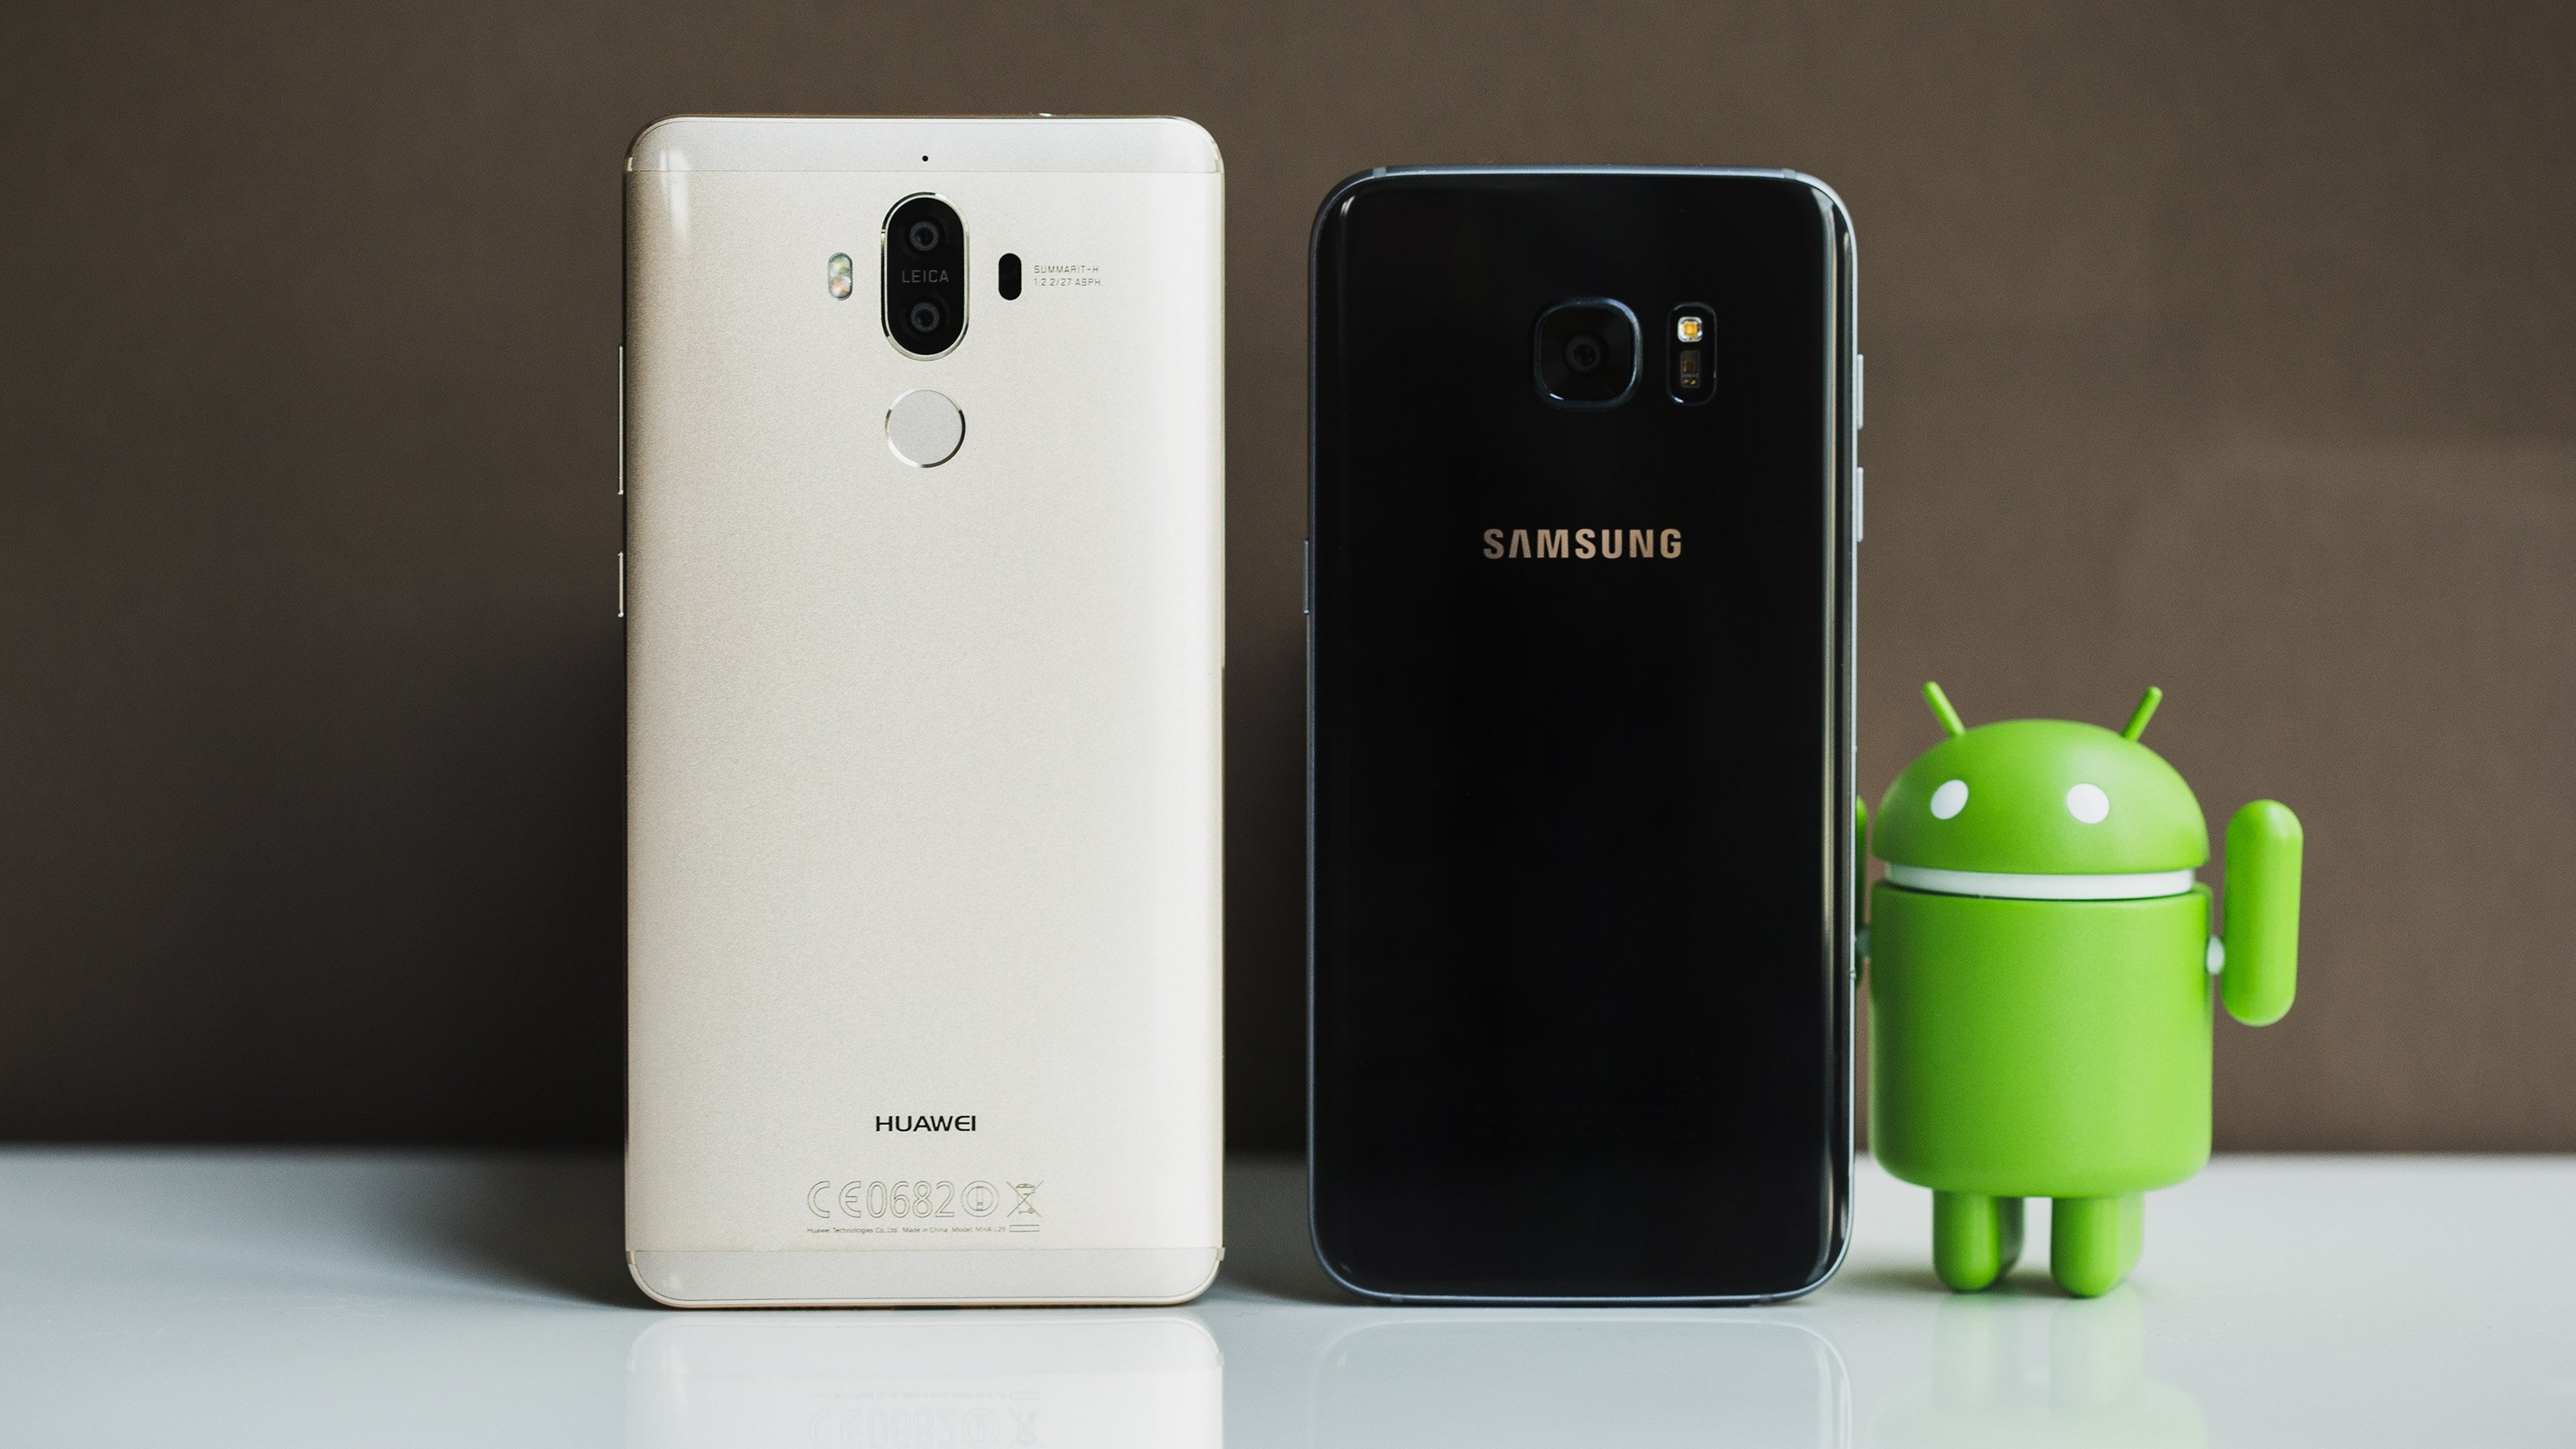 huawei mate 9 vs samsung galaxy s7 edge not always better androidpit. Black Bedroom Furniture Sets. Home Design Ideas